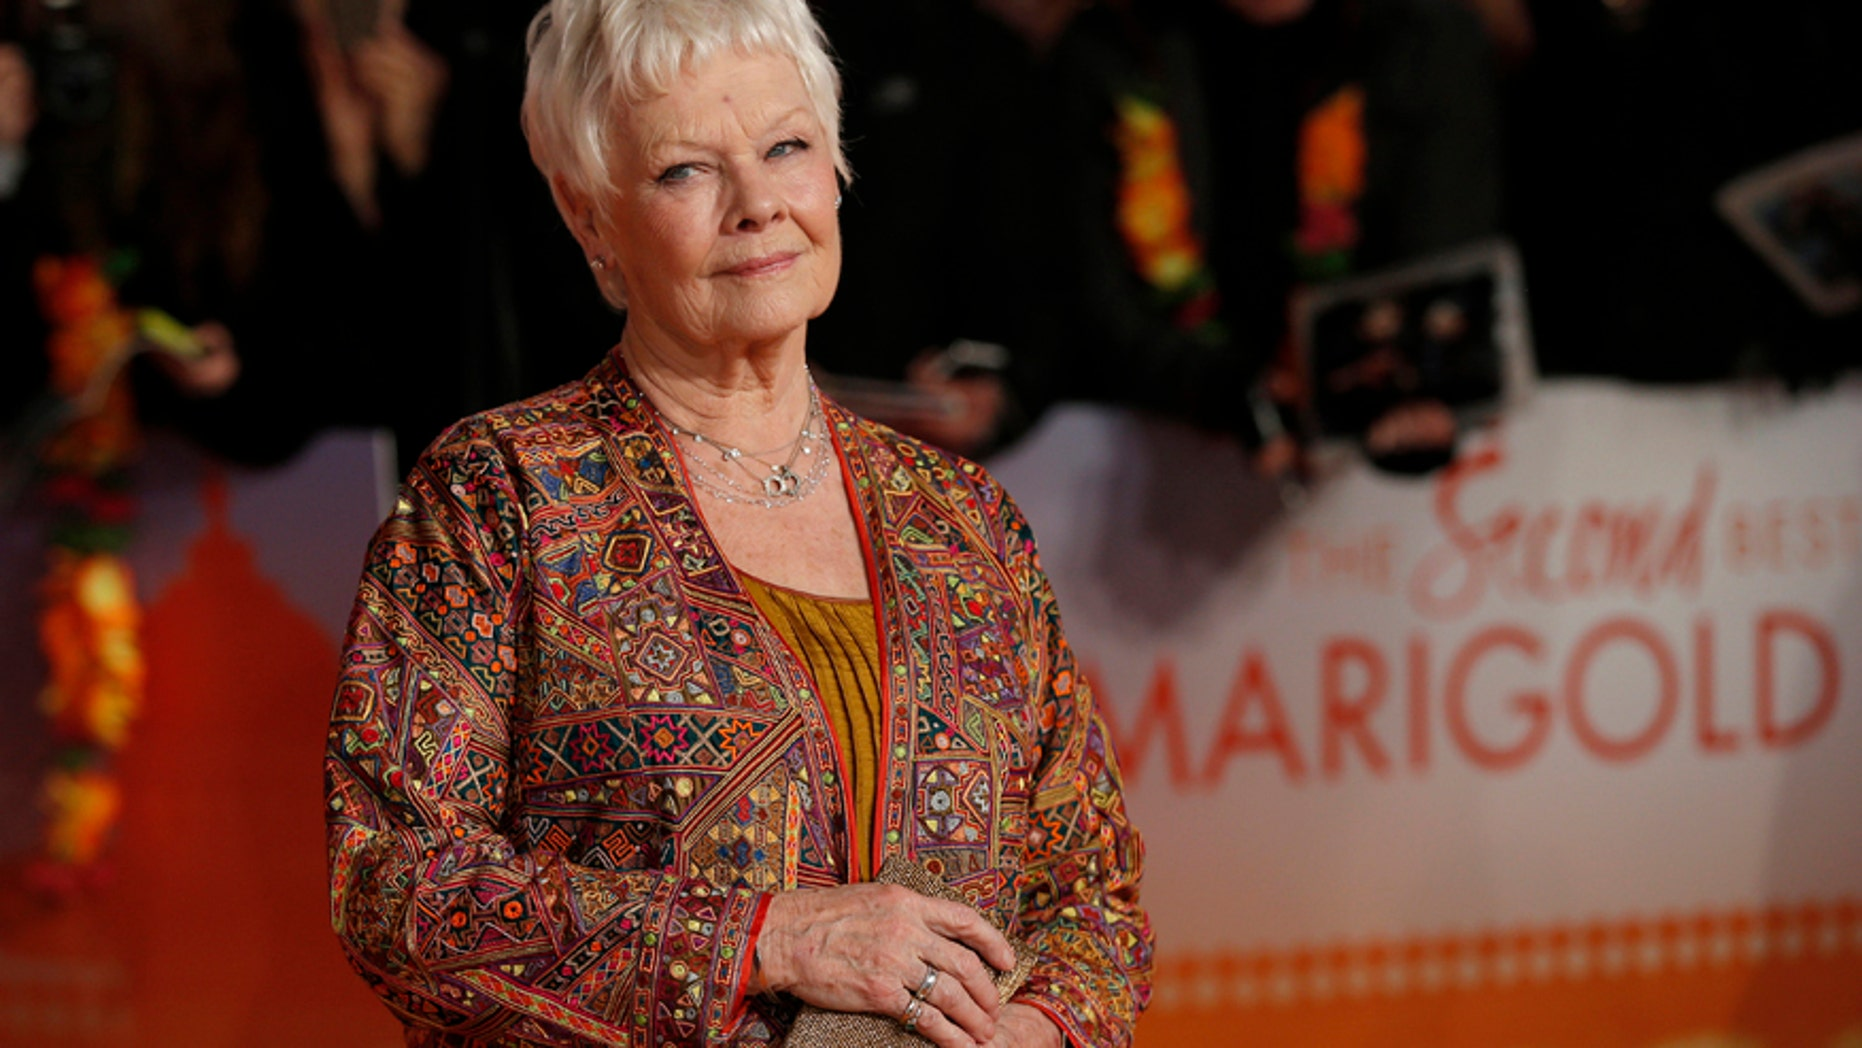 """Actress Judi Dench arrives at the Royal Film Performance and world premiere of the film, """"The Second Best Exotic Marigold Hotel"""", at Leicester Square, London February 17, 2015."""